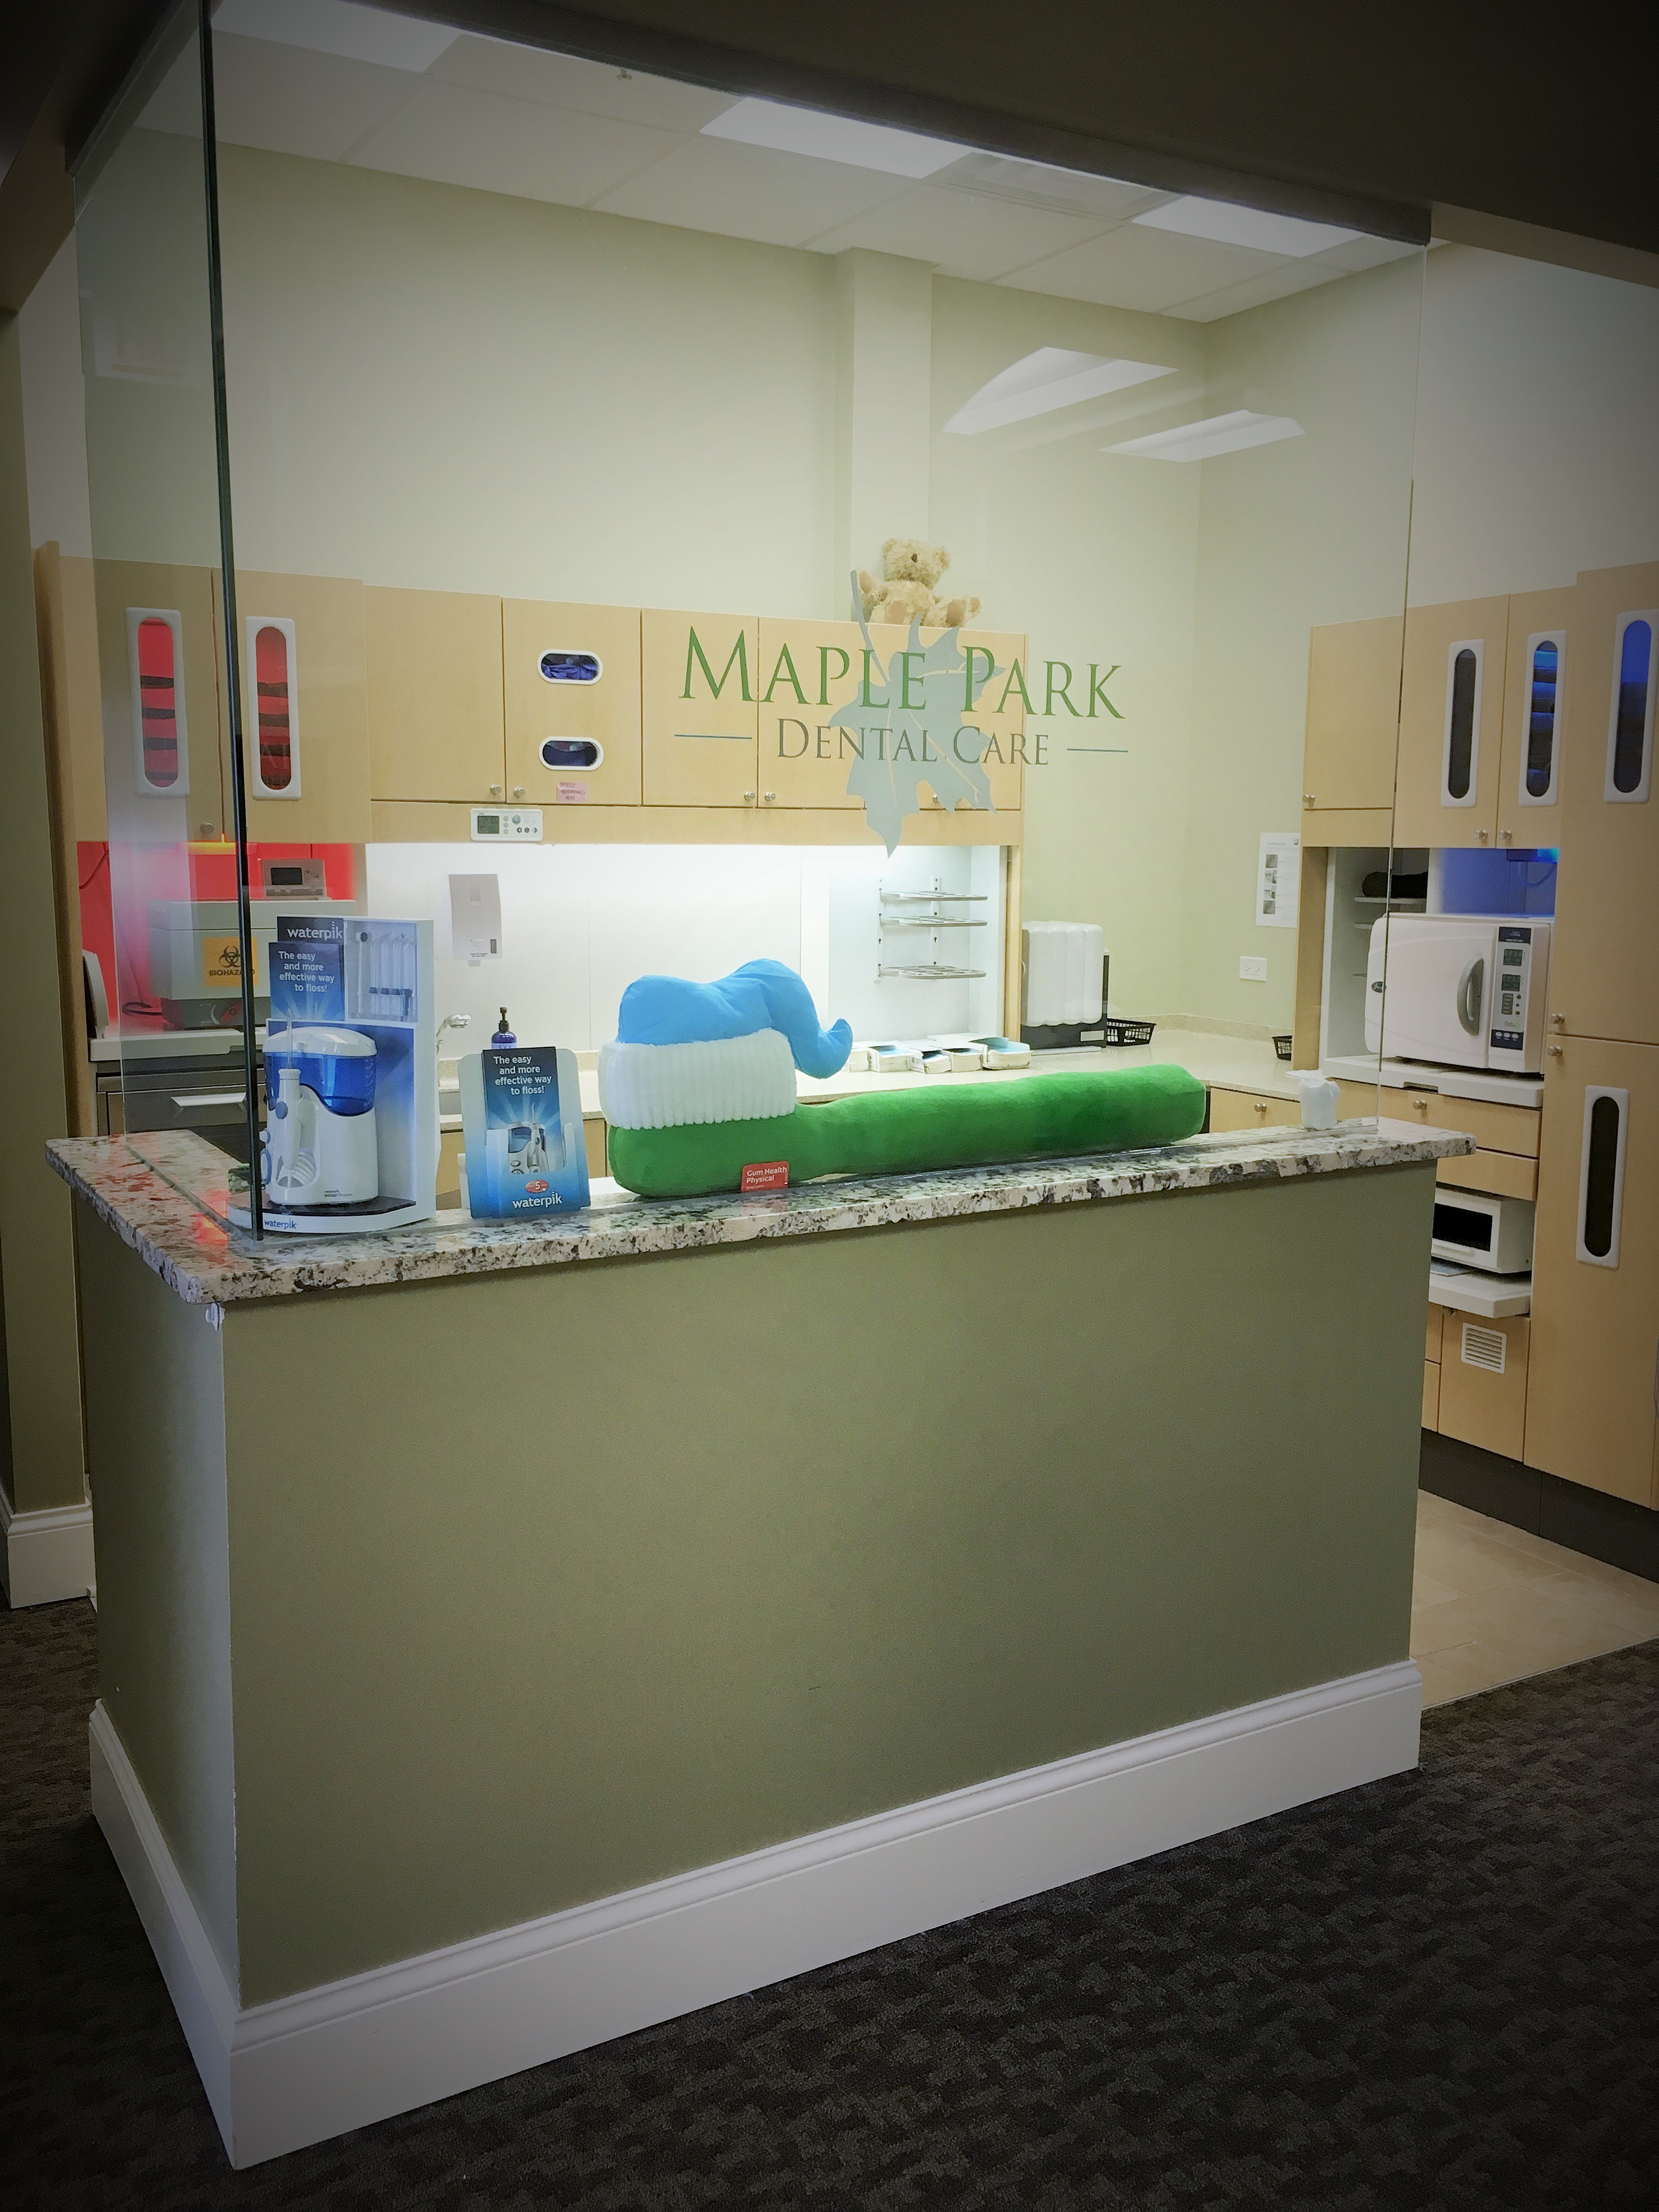 Maple Park Dental Care of Naperville image 7